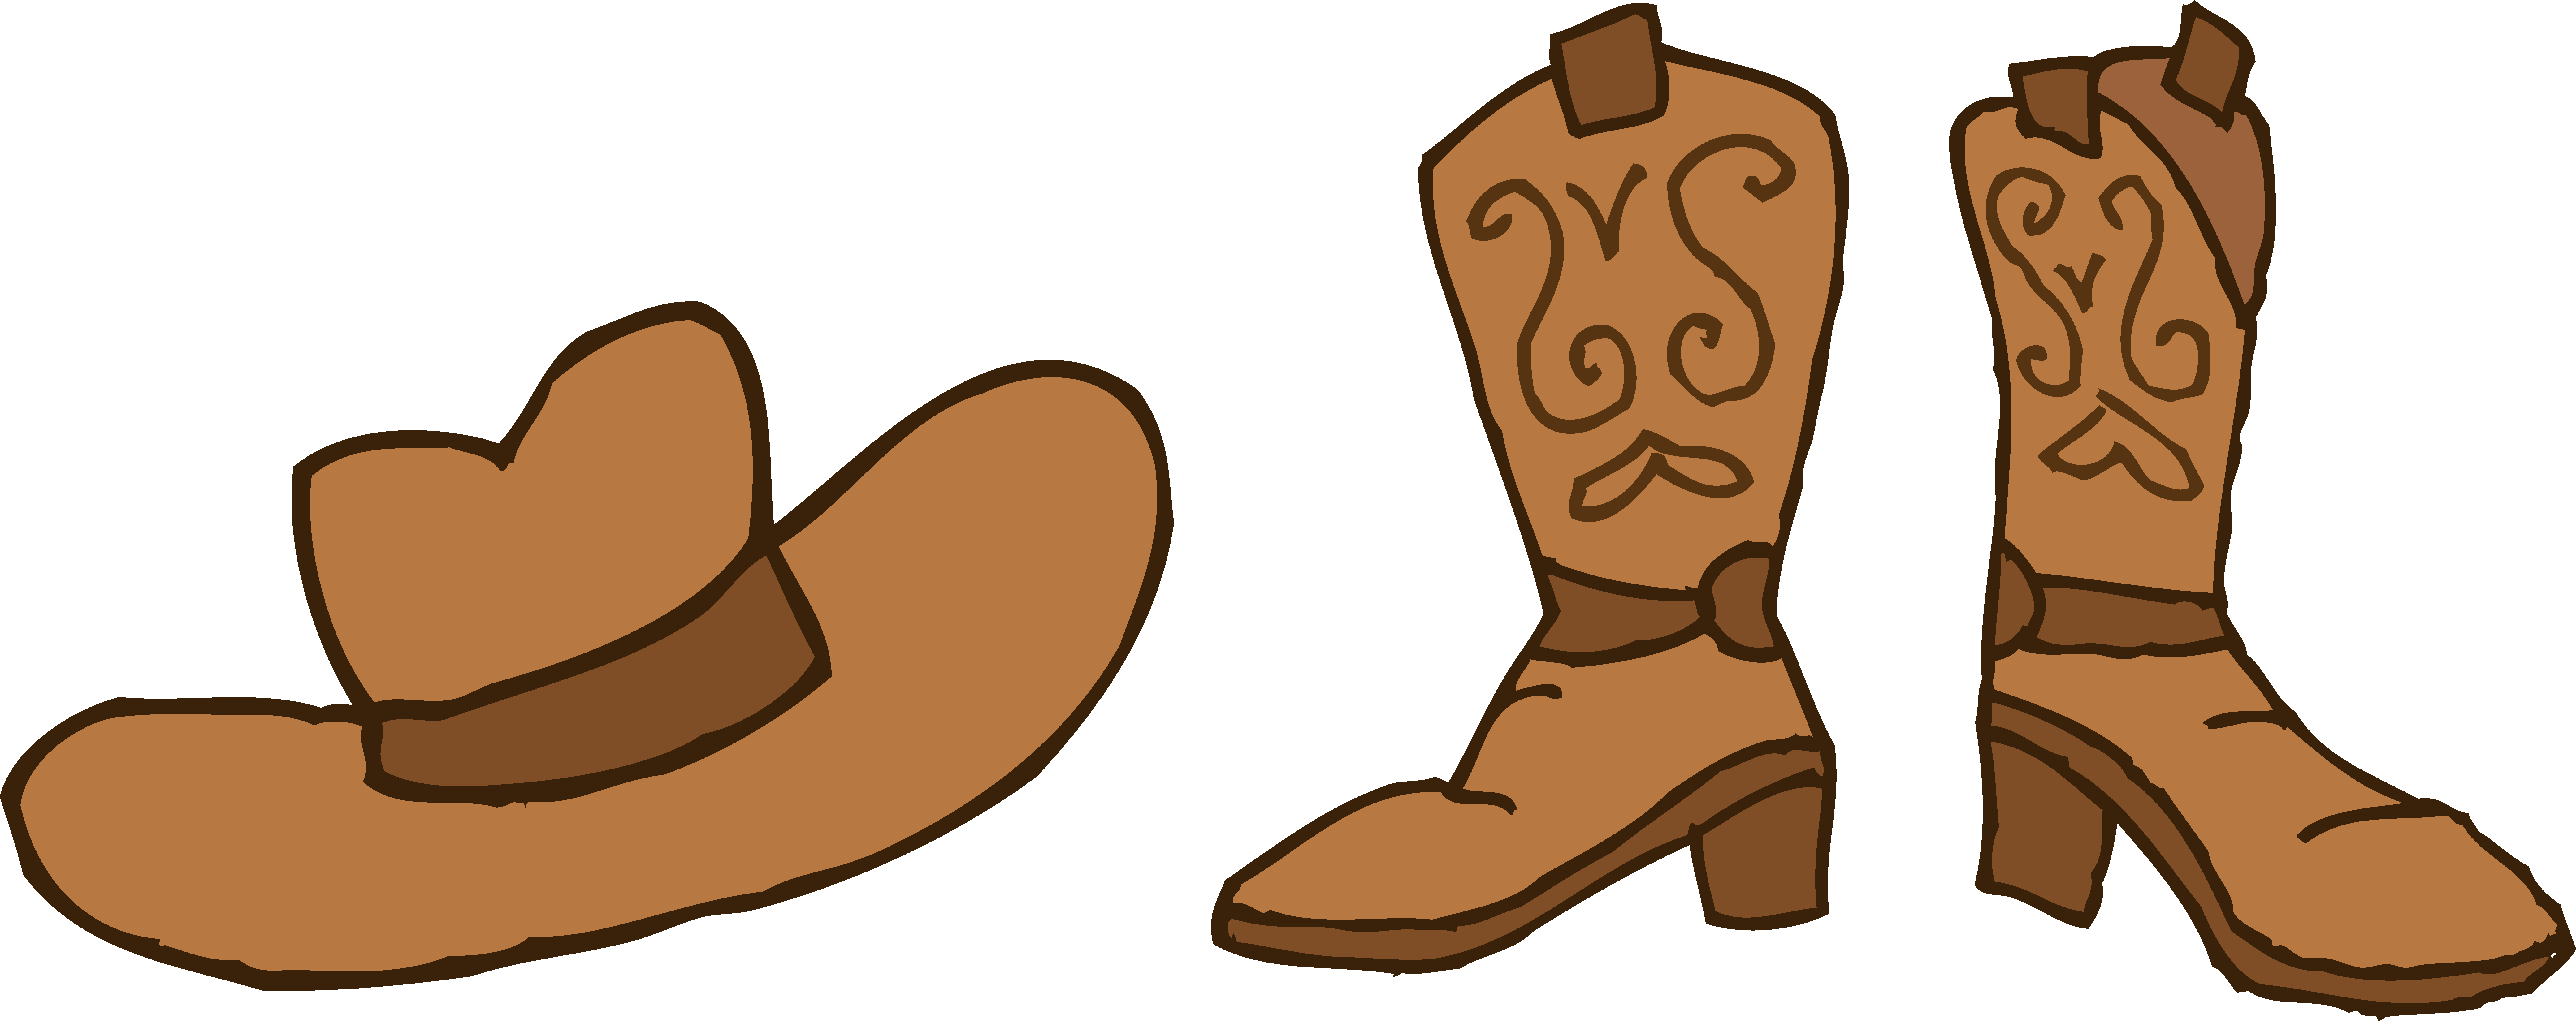 boot clipart boot house